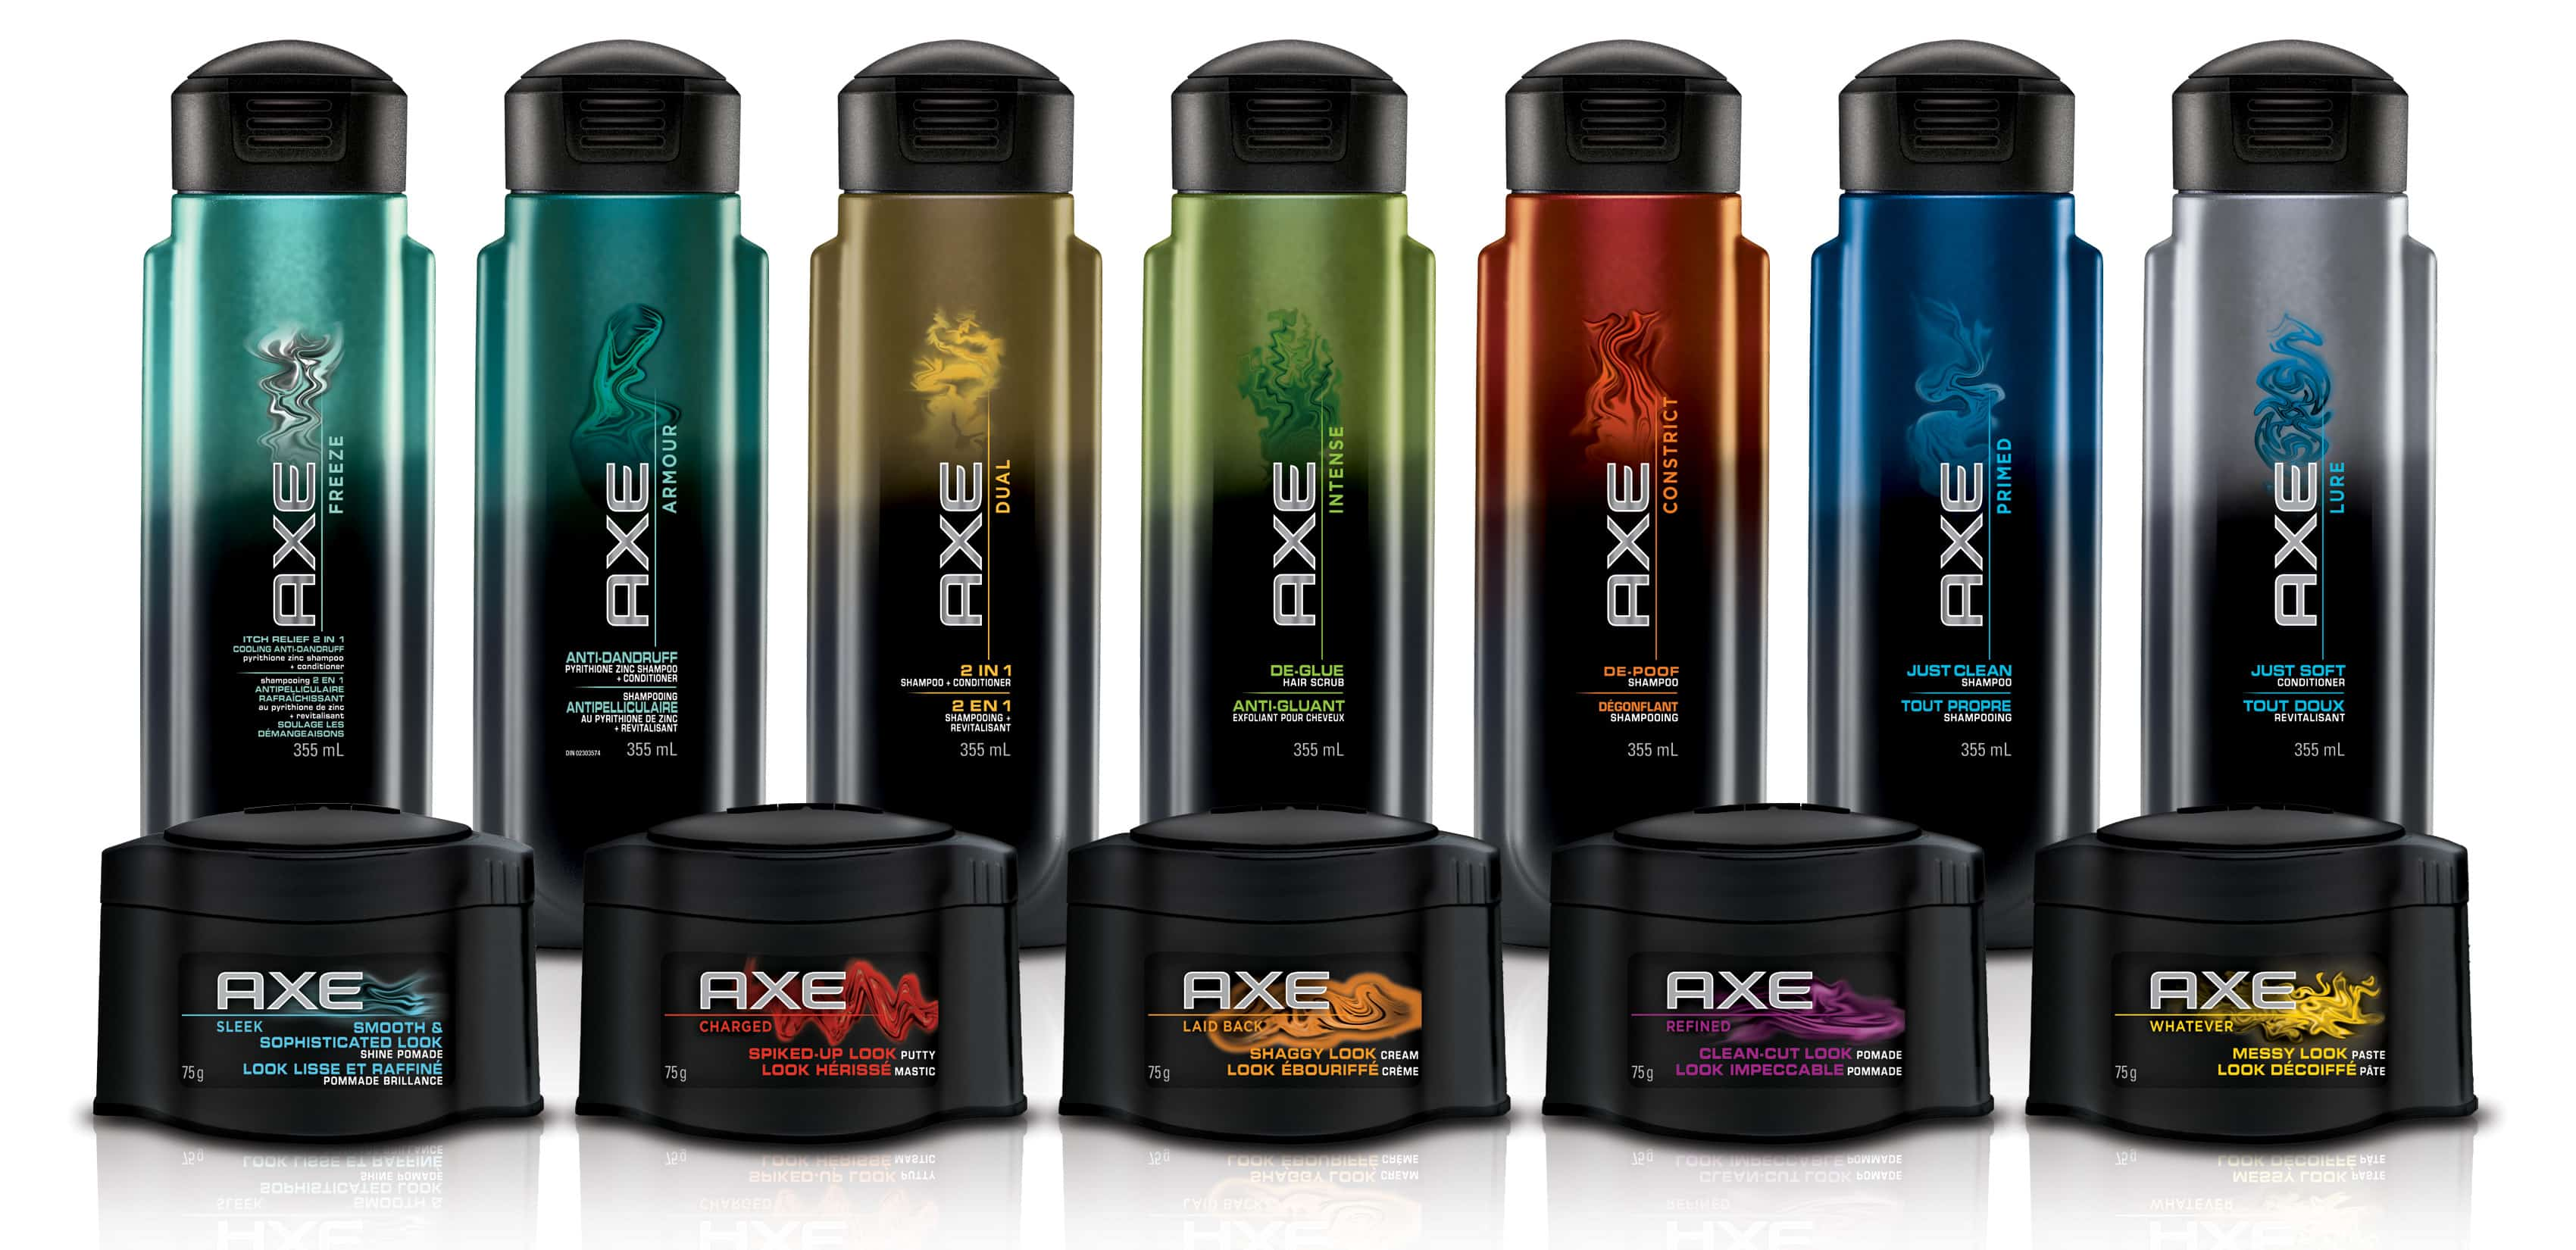 HD wallpapers axe hair styling gel reviews